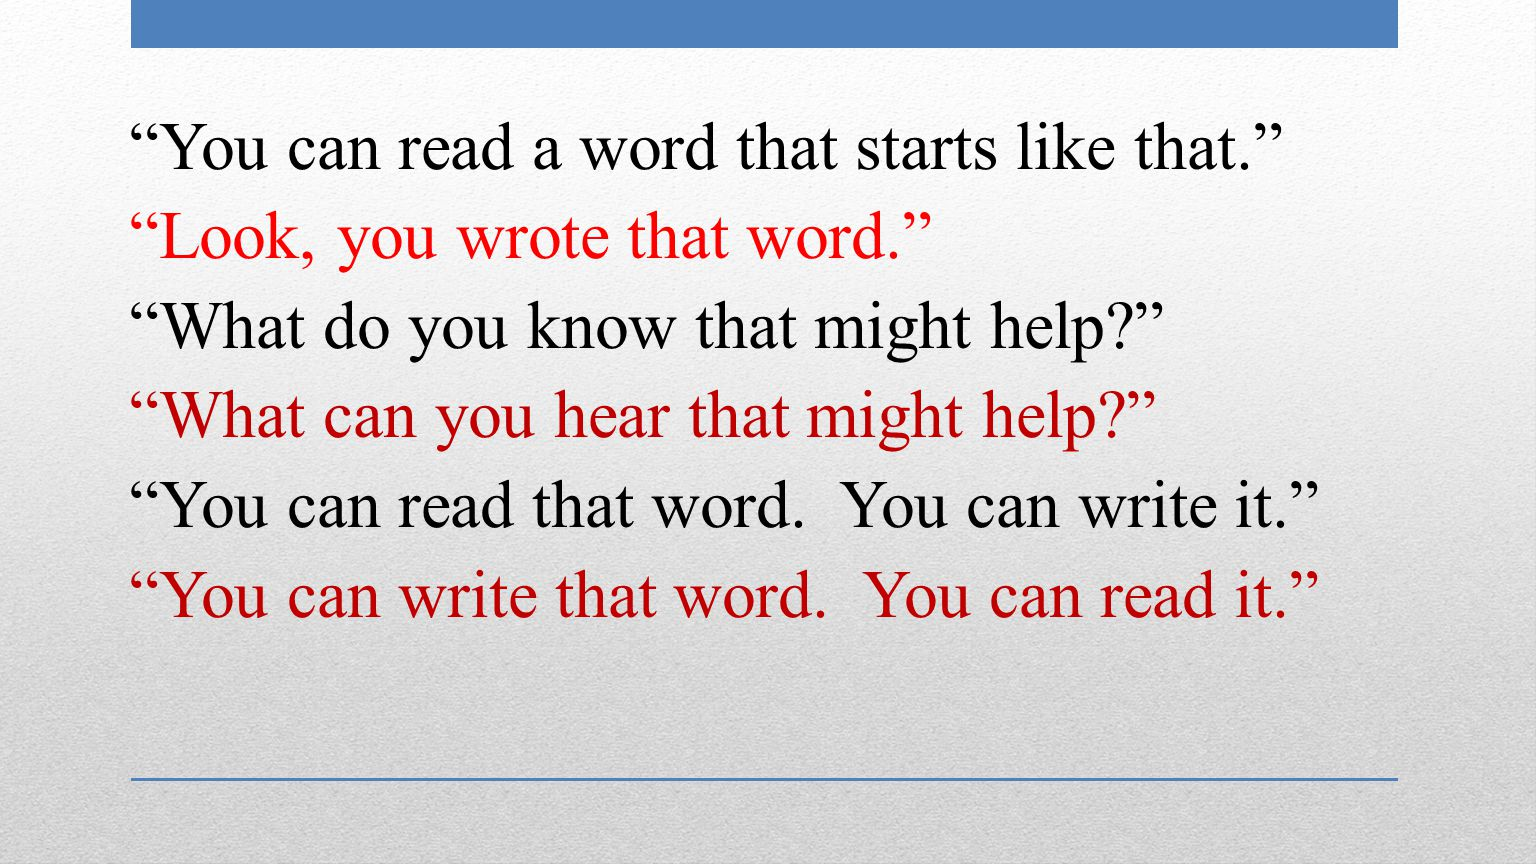 You can read a word that starts like that. Look, you wrote that word. What do you know that might help What can you hear that might help You can read that word.